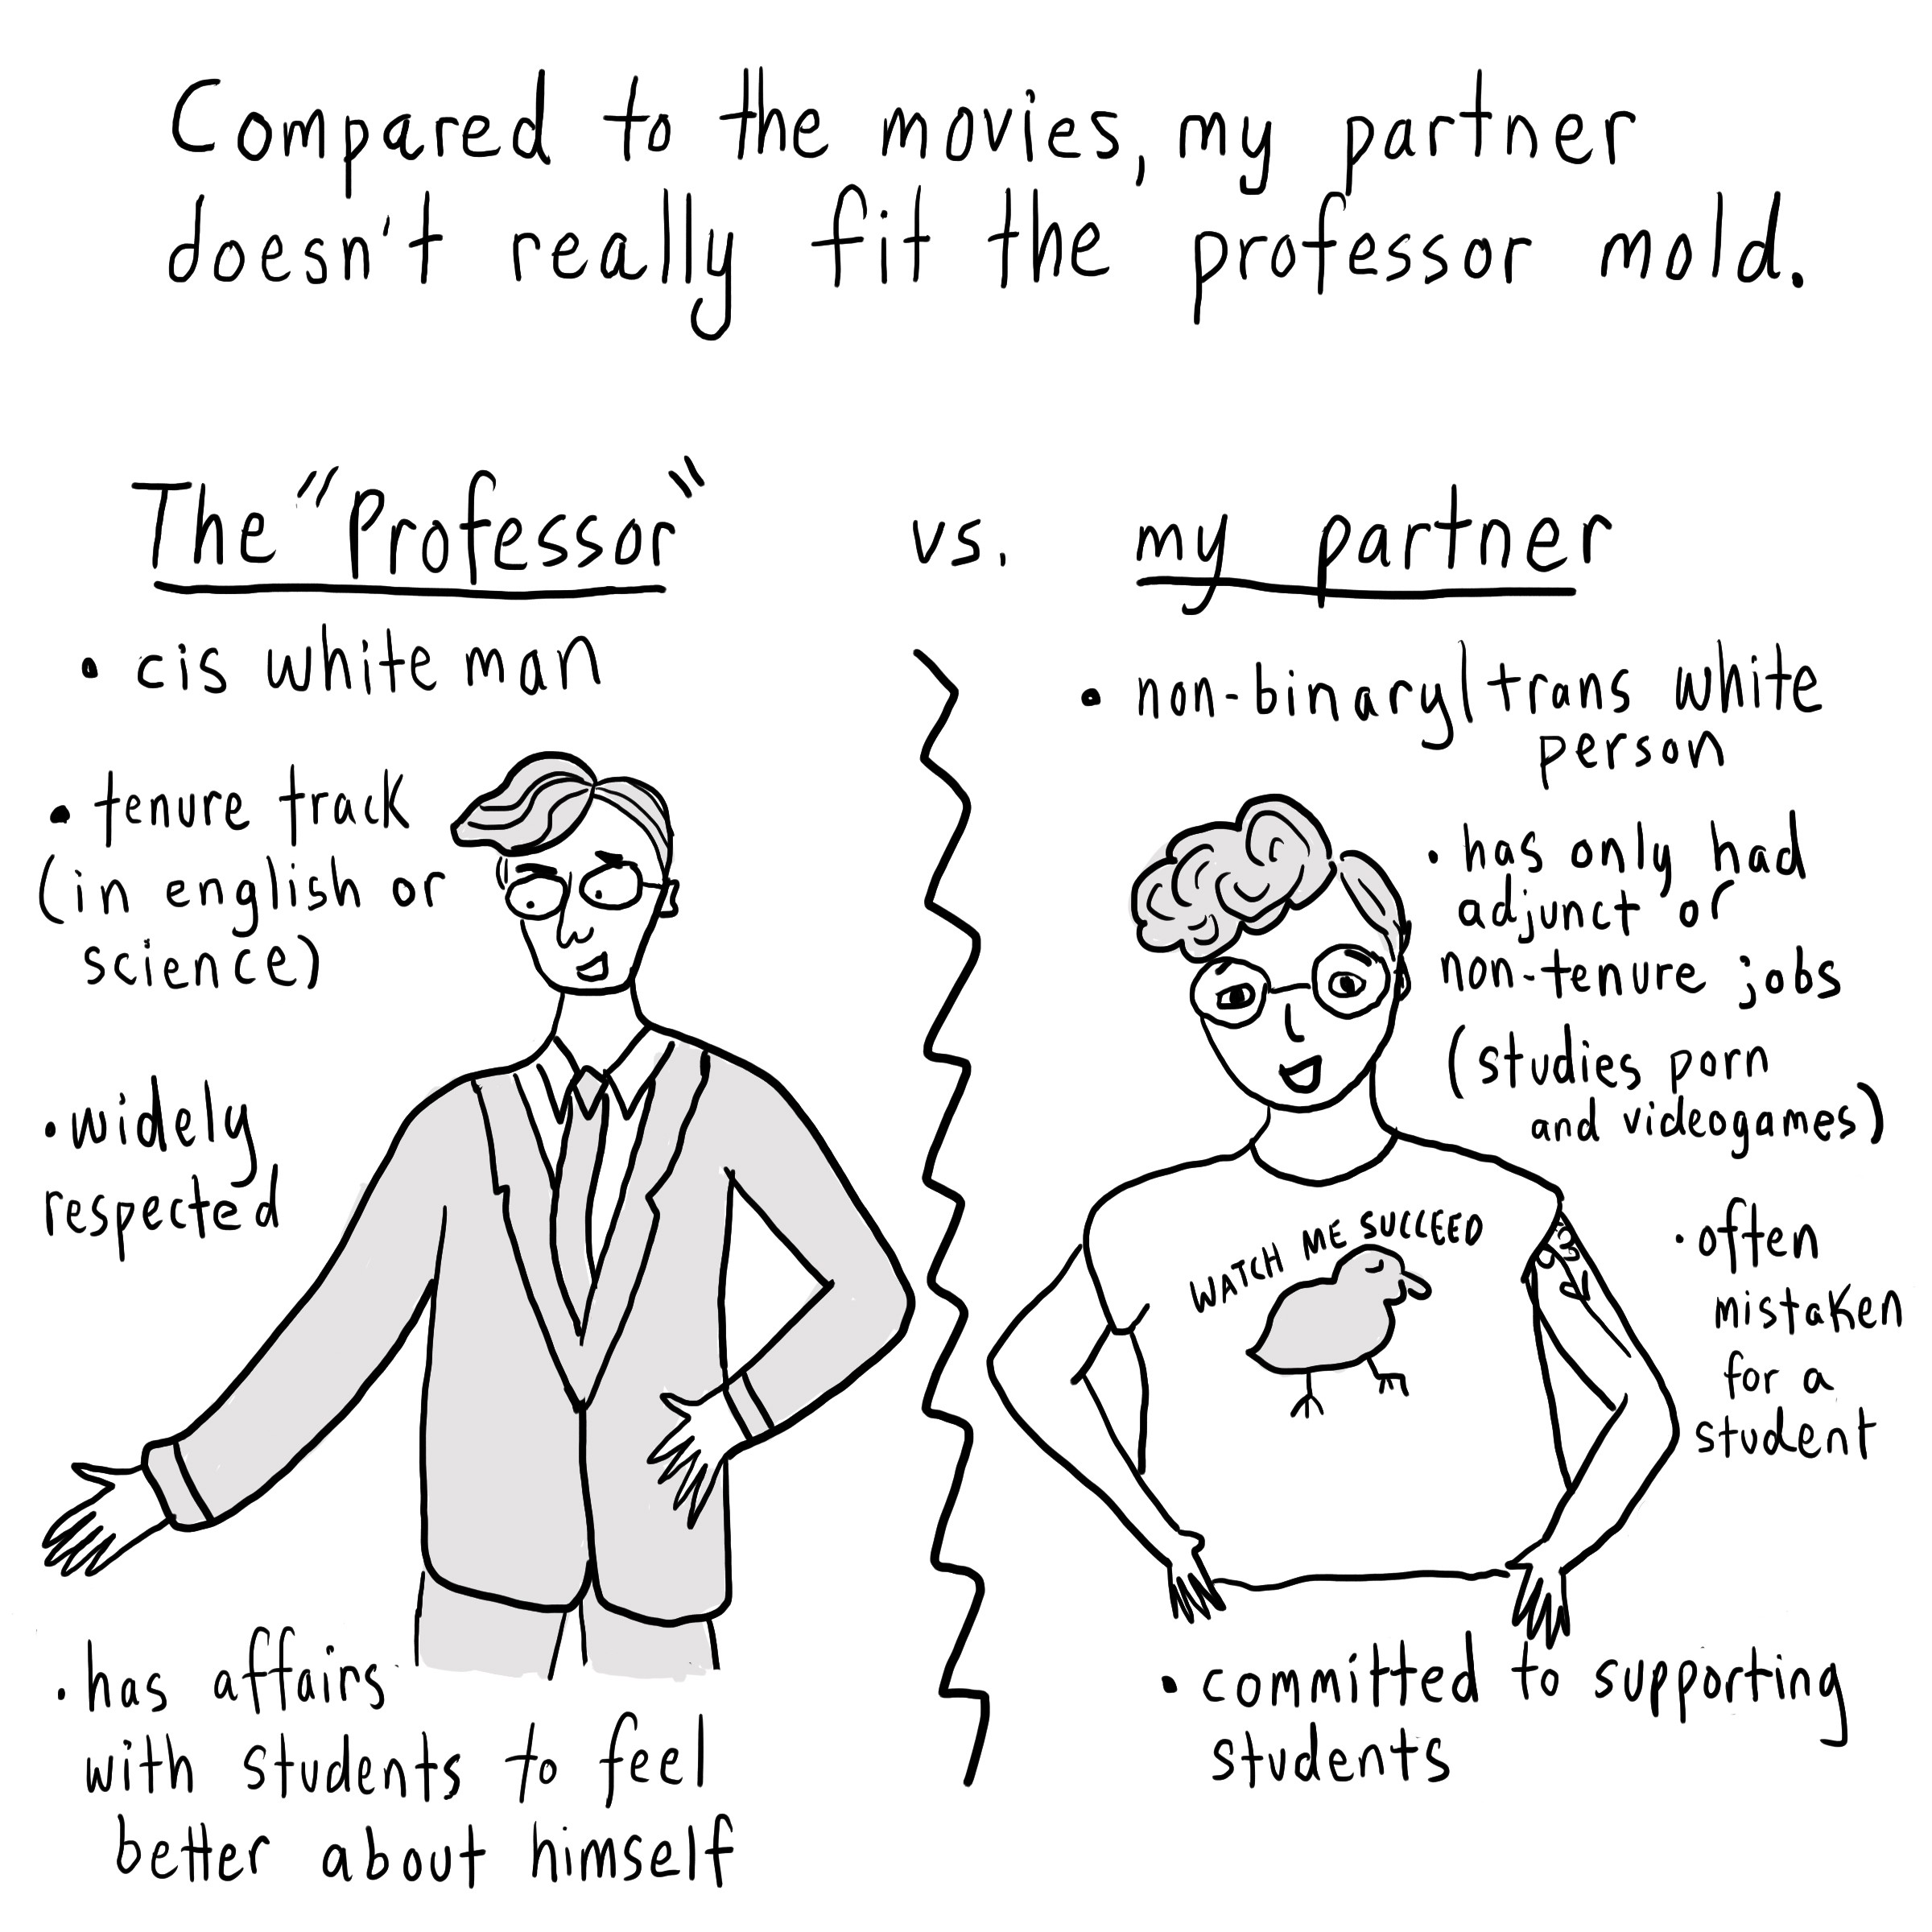 Text: Compared to the movies, my partner doesn't really fit the professor mold. [A middle-aged man in a suit and a queer person with tattoos separated by a vertical line.] The professor: cis white man, tenure track (in English or science), widely respected, has affairs with students to feel better about himself. My partner: nonbinary/trans white person, has only had adjunct or non-tenure jobs (studies porn and video games), often mistaken for a student, committed to supporting students.